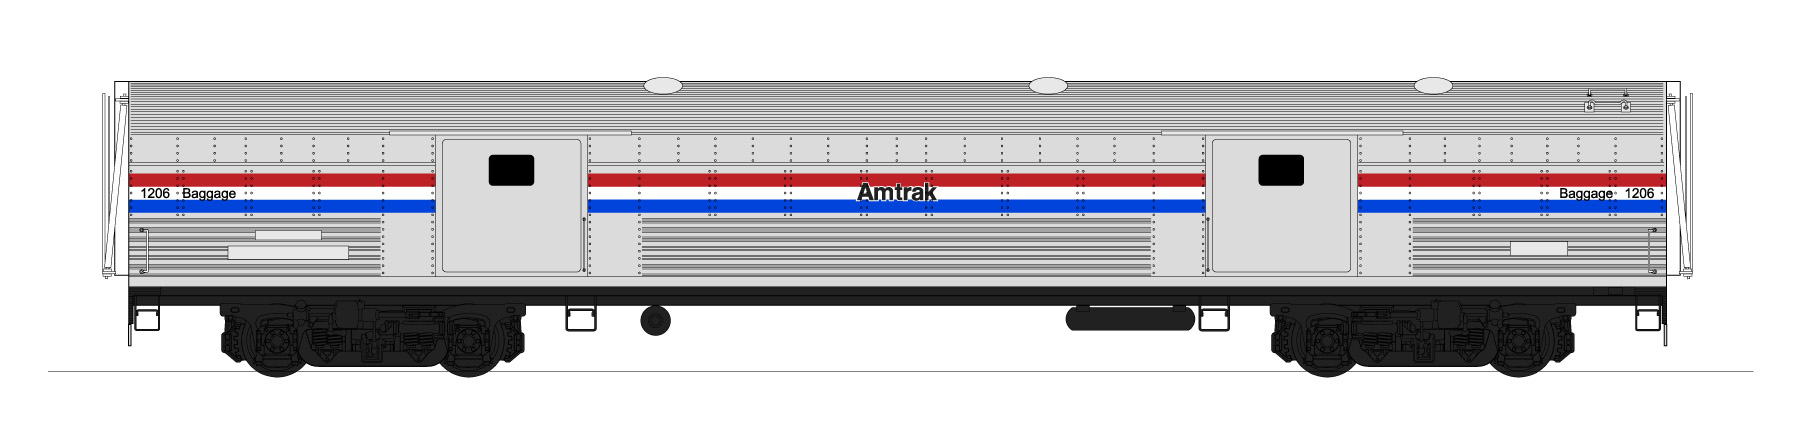 331148602350 in addition imt Lenzen besides Small Layouts additionally CA additionally Superliner Page. on kato trains